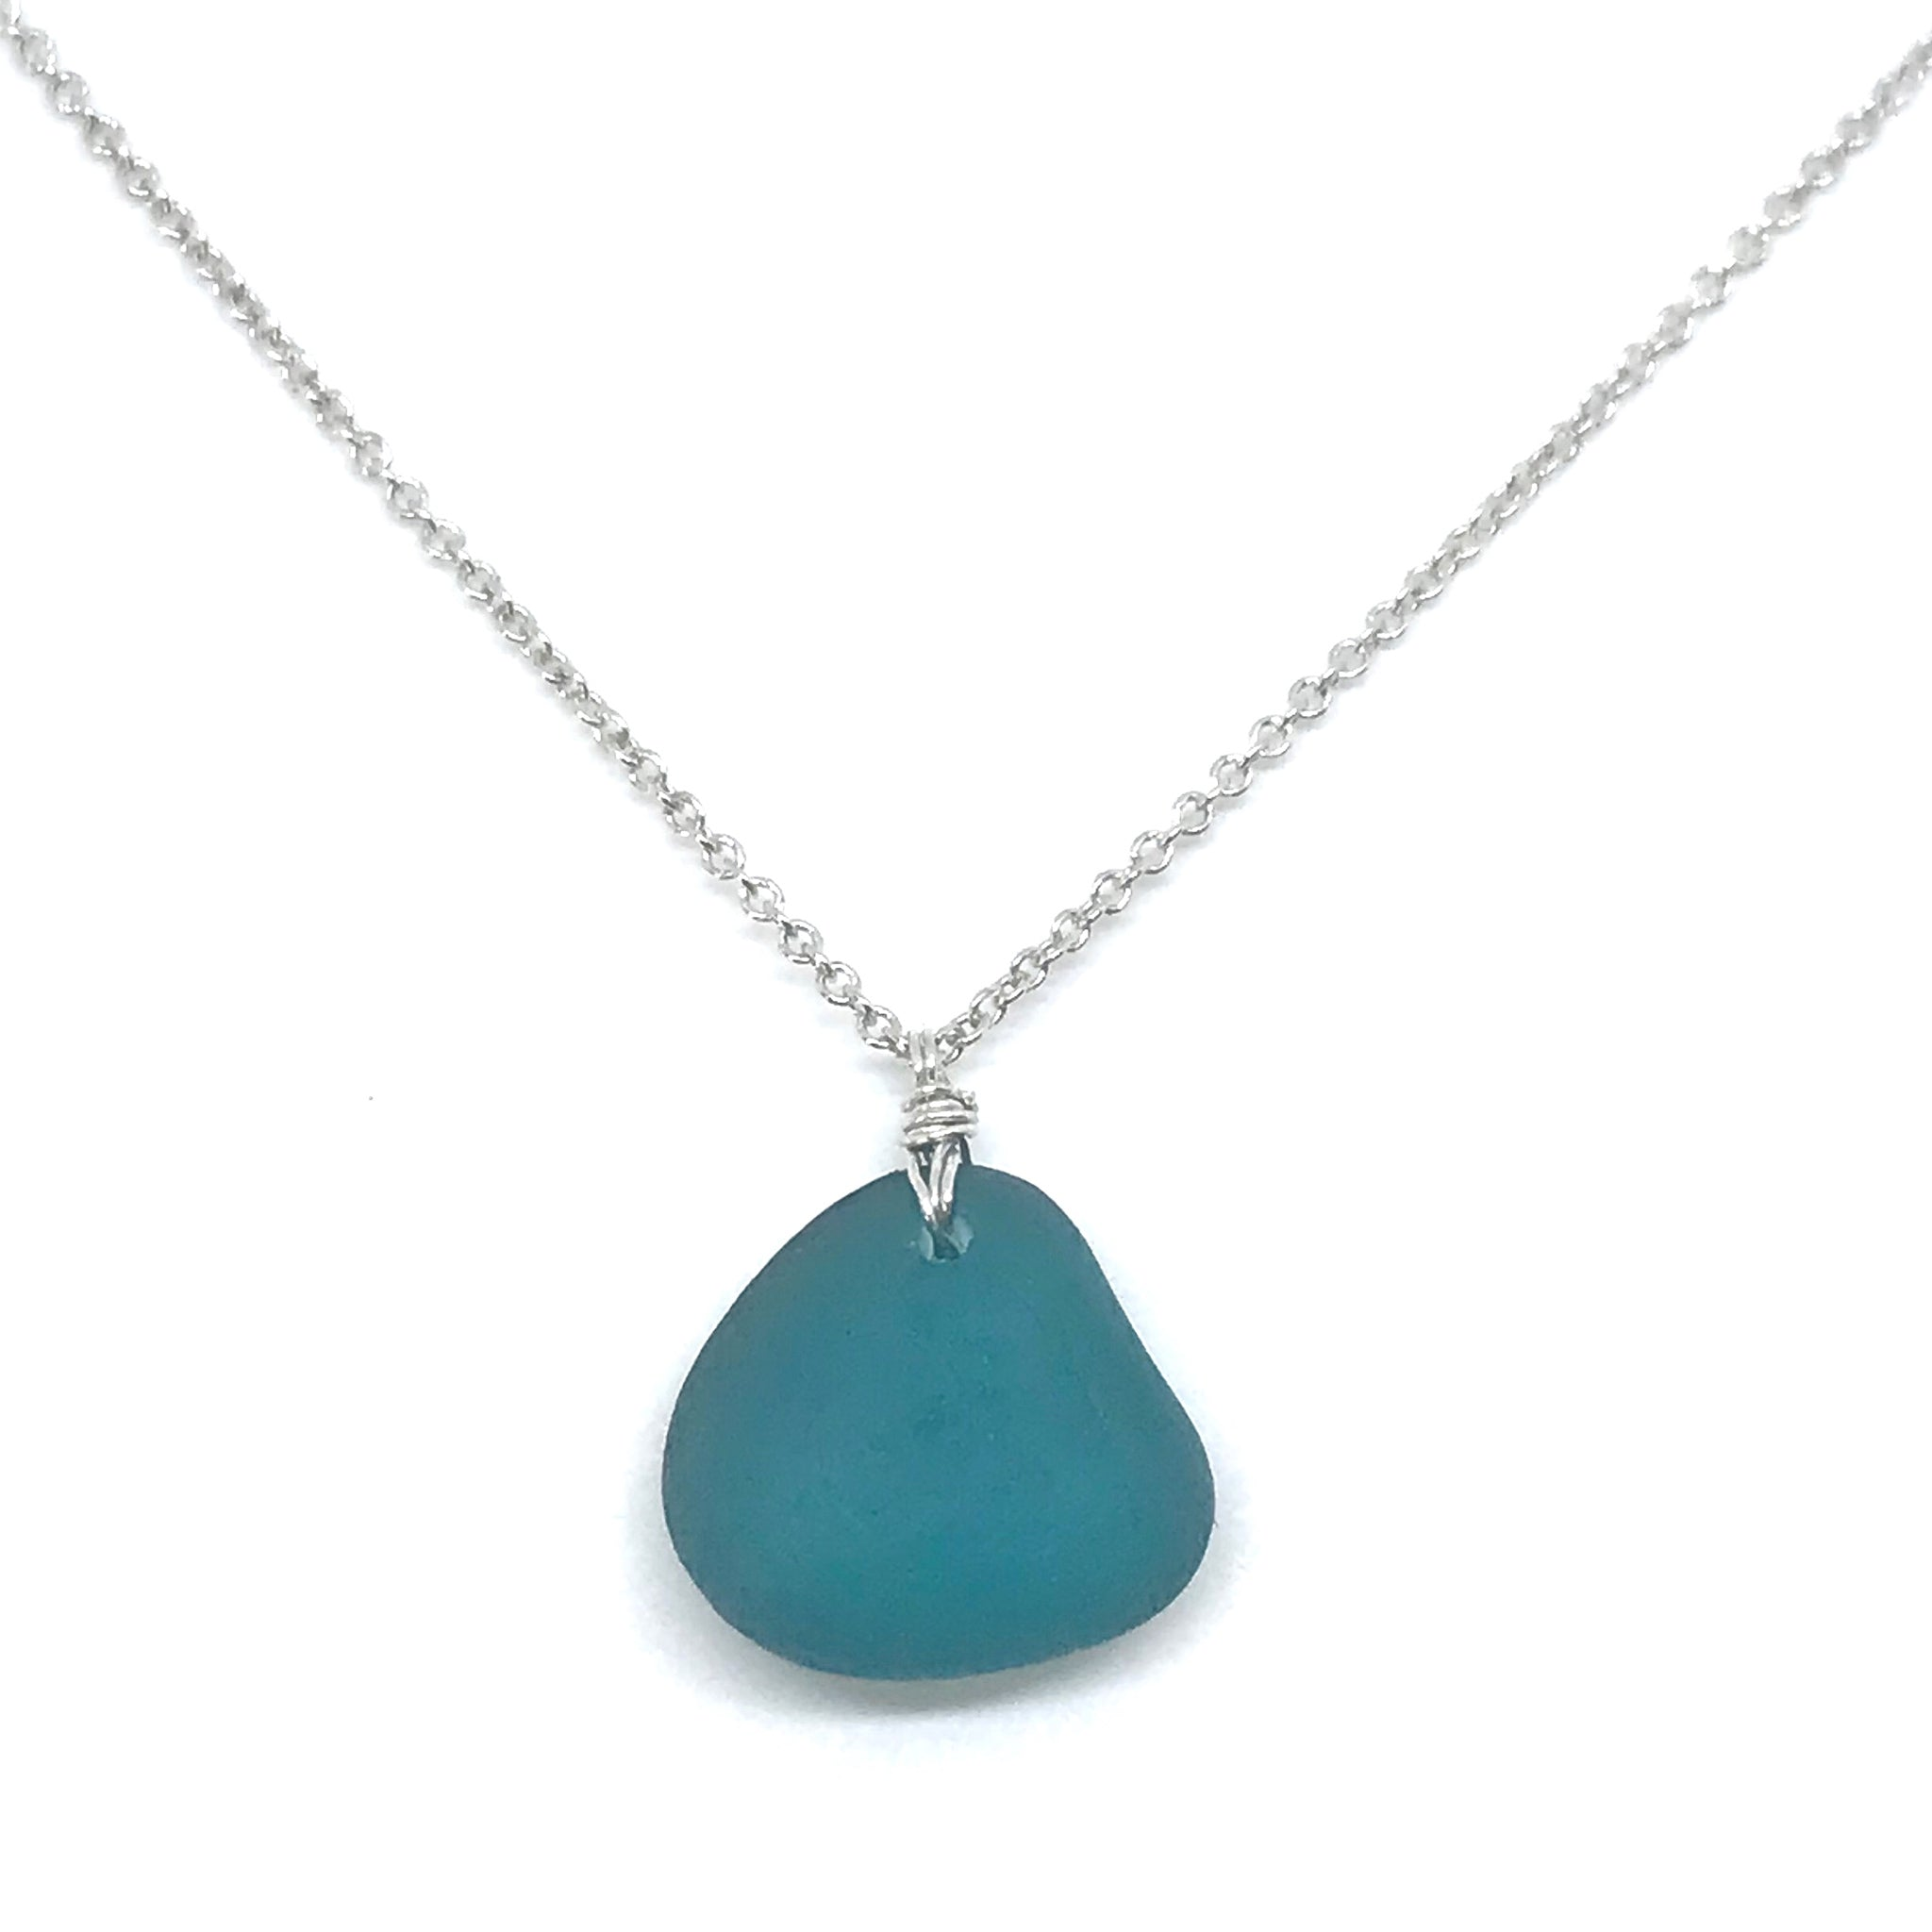 Teal Seaglass Necklace on Short Silver Chain - kriket broadhurst jewellery Sydney